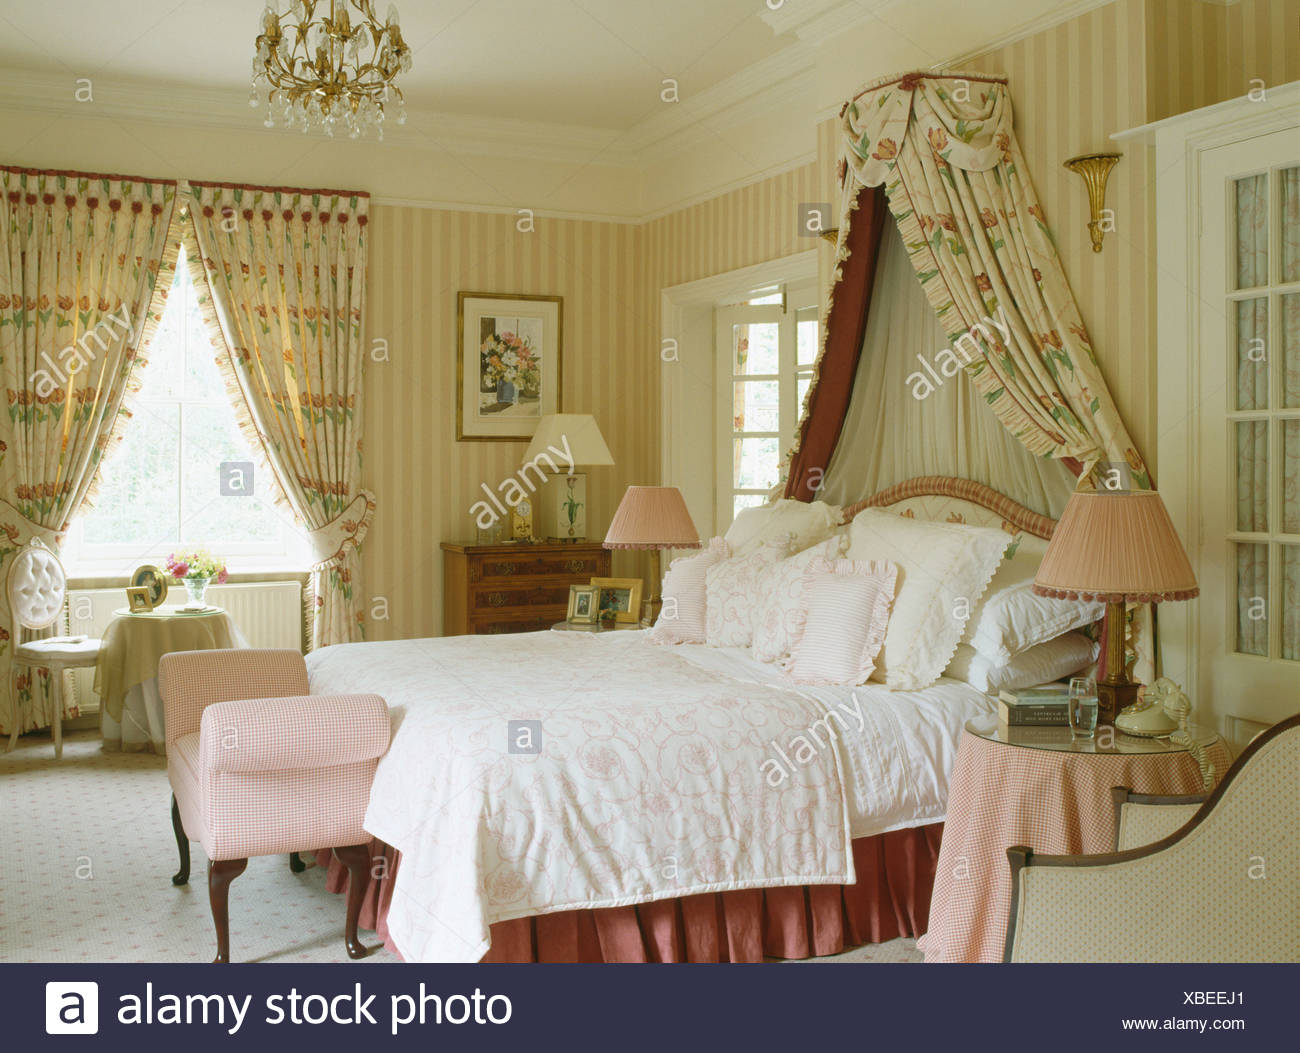 Coronet With Floral Drapes Above Bed Piled With Cushions In Country Bedroom With Striped Wallpaper And Floral Curtains Stock Photo Alamy